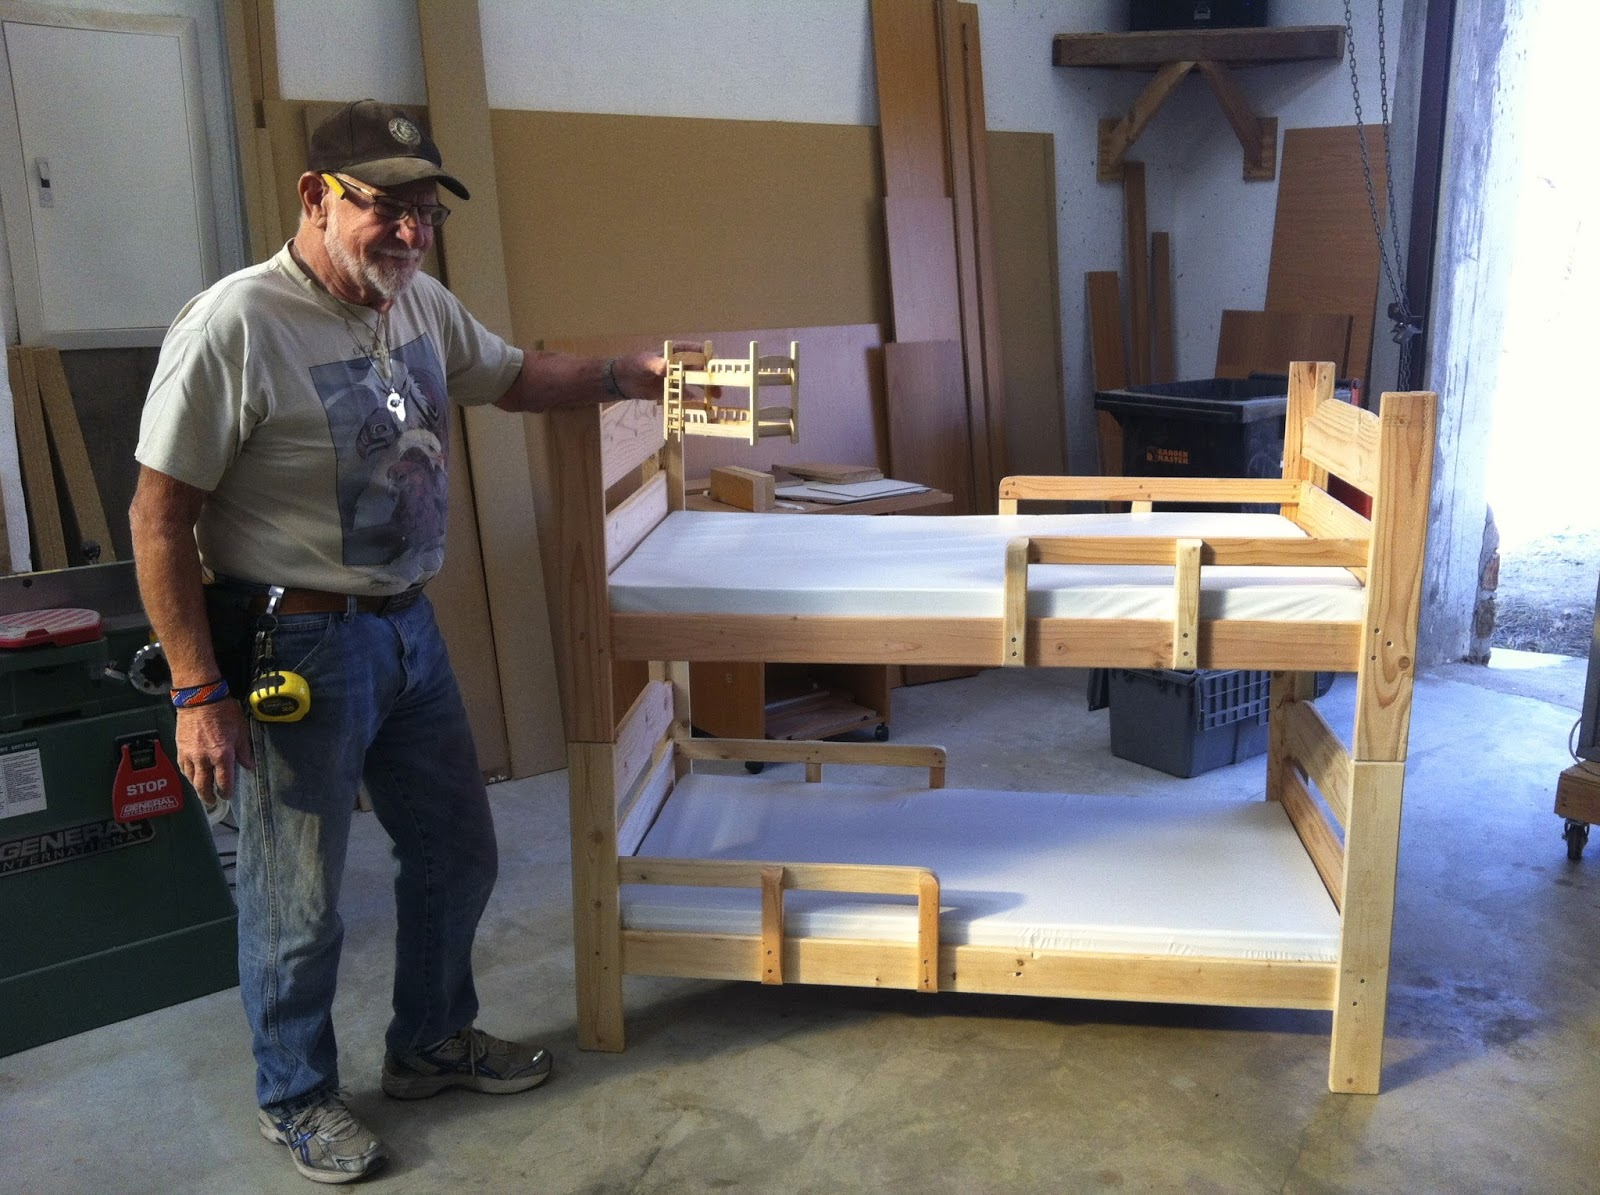 Toddler Bunks Toddler Bunk Beds Bunk Bed And Toddlers On Pinterest